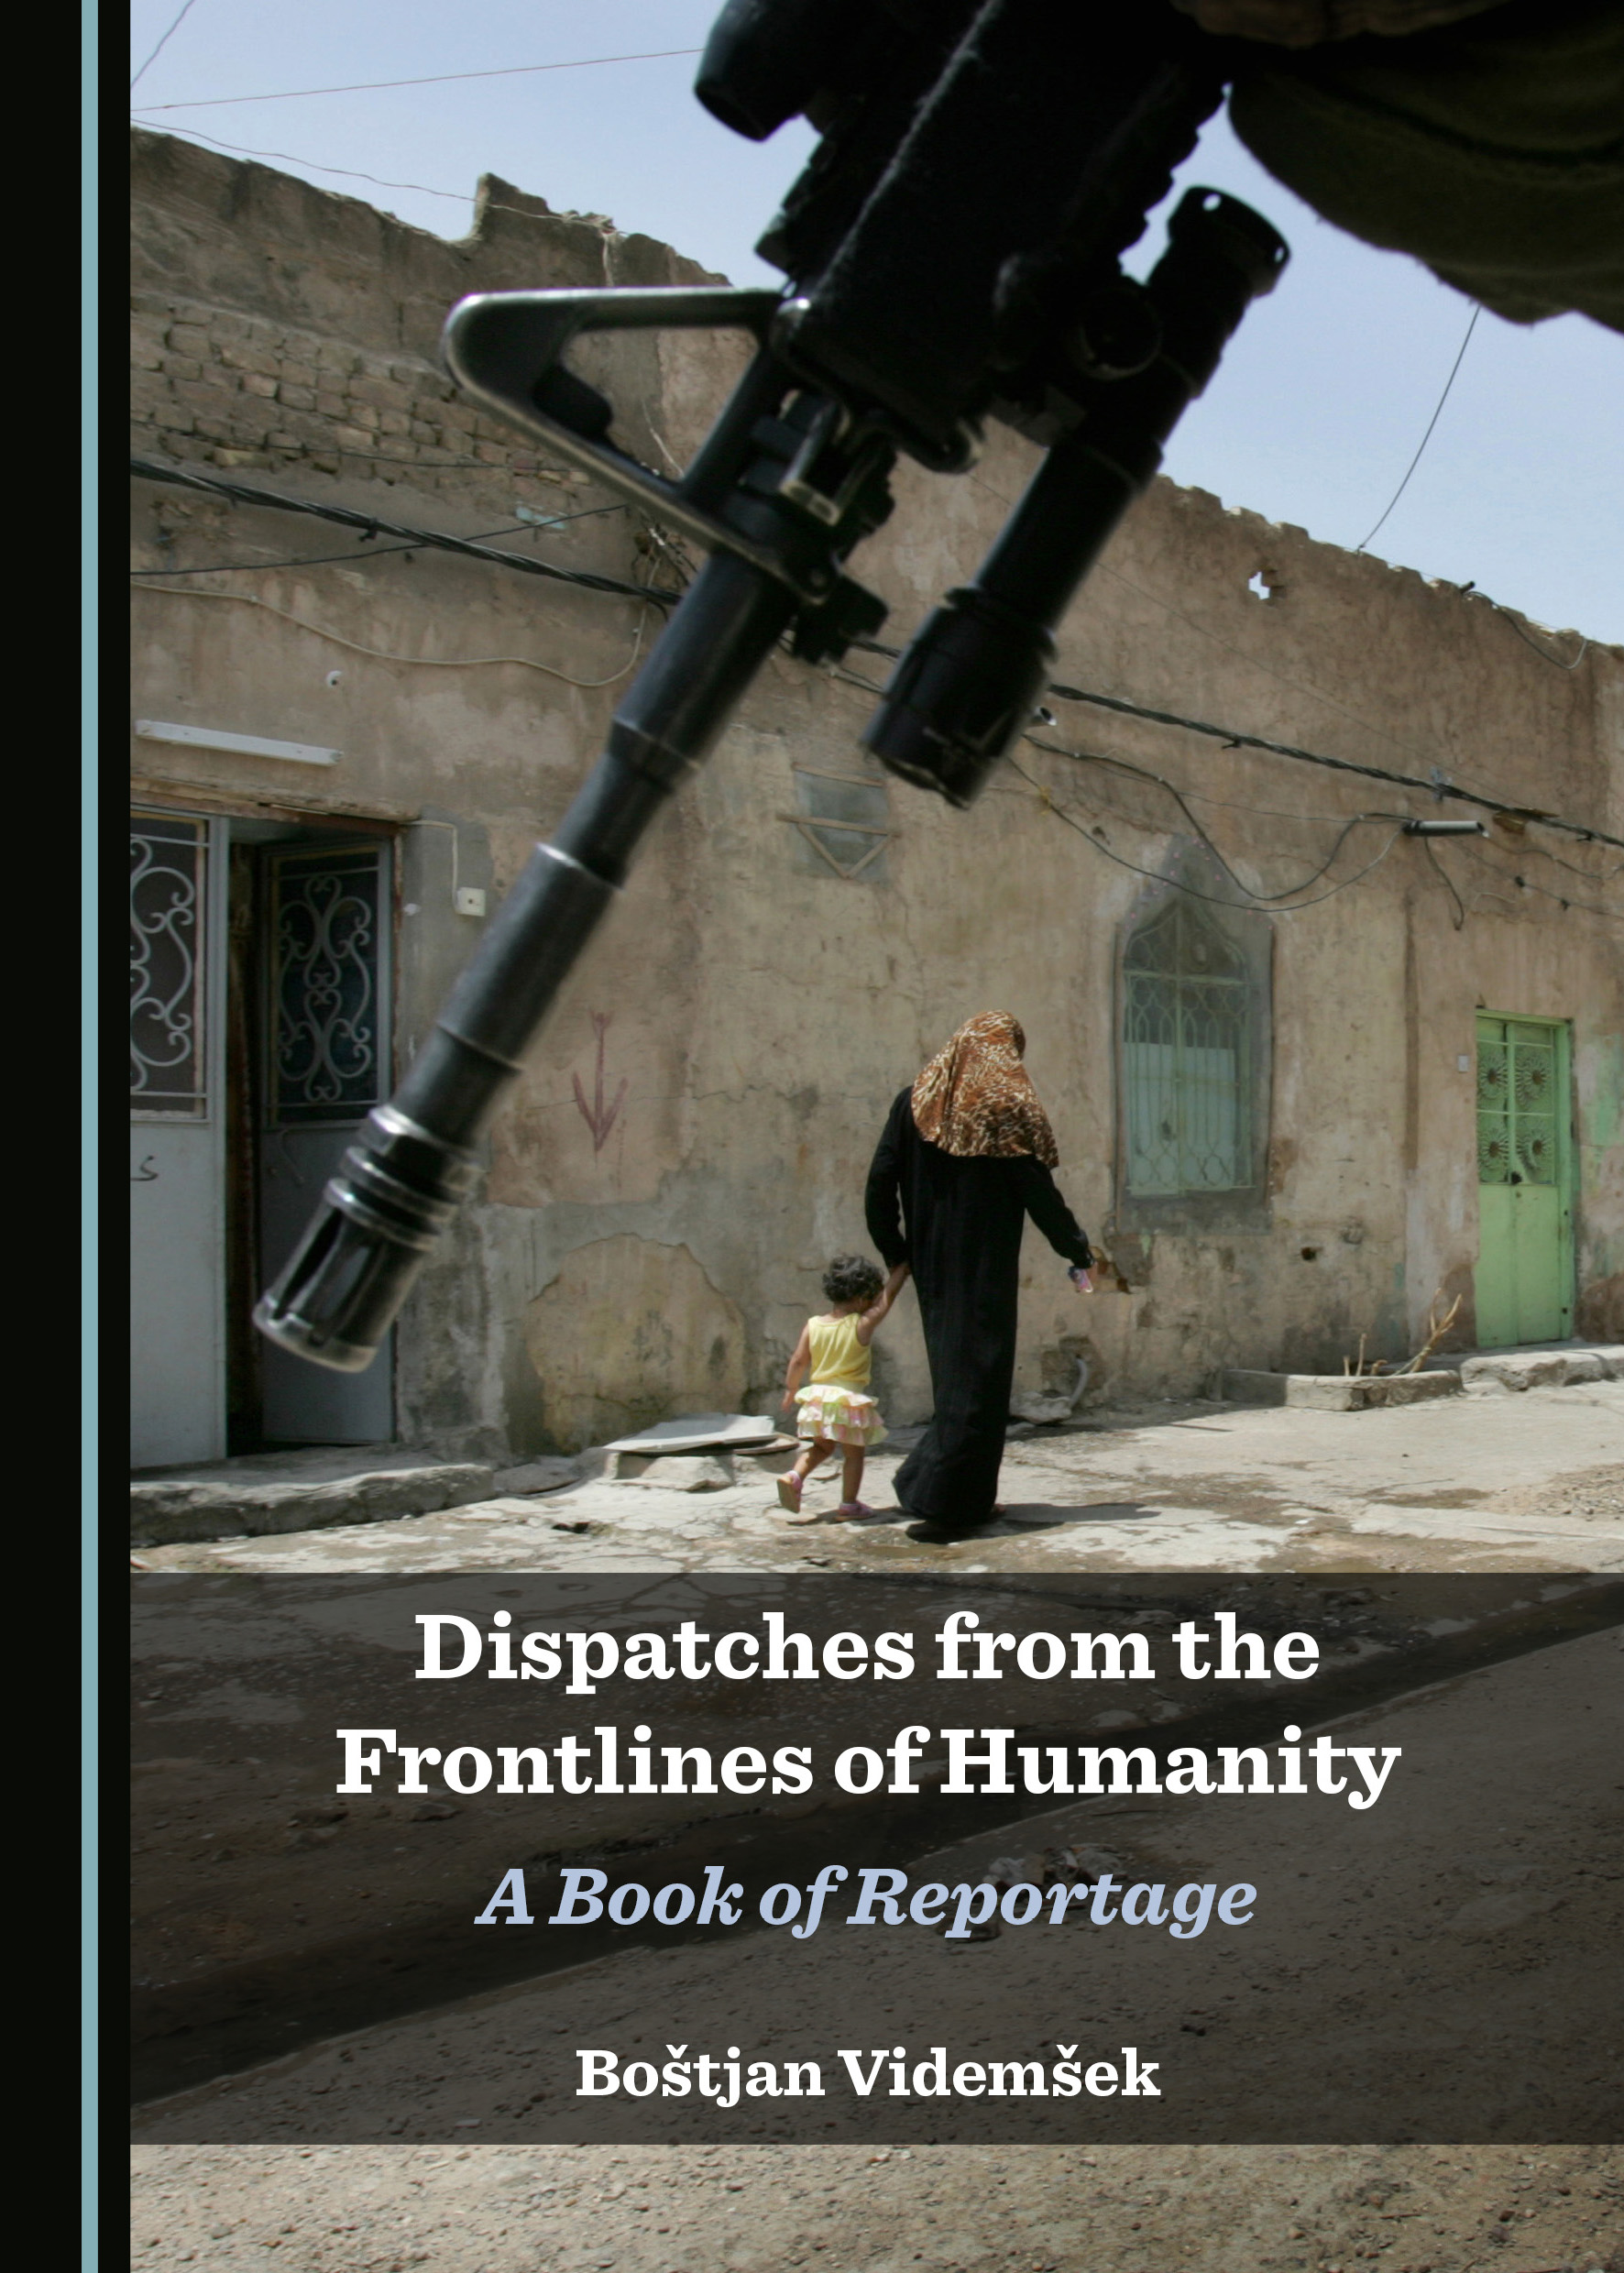 Dispatches from the Frontlines of Humanity: A Book of Reportage